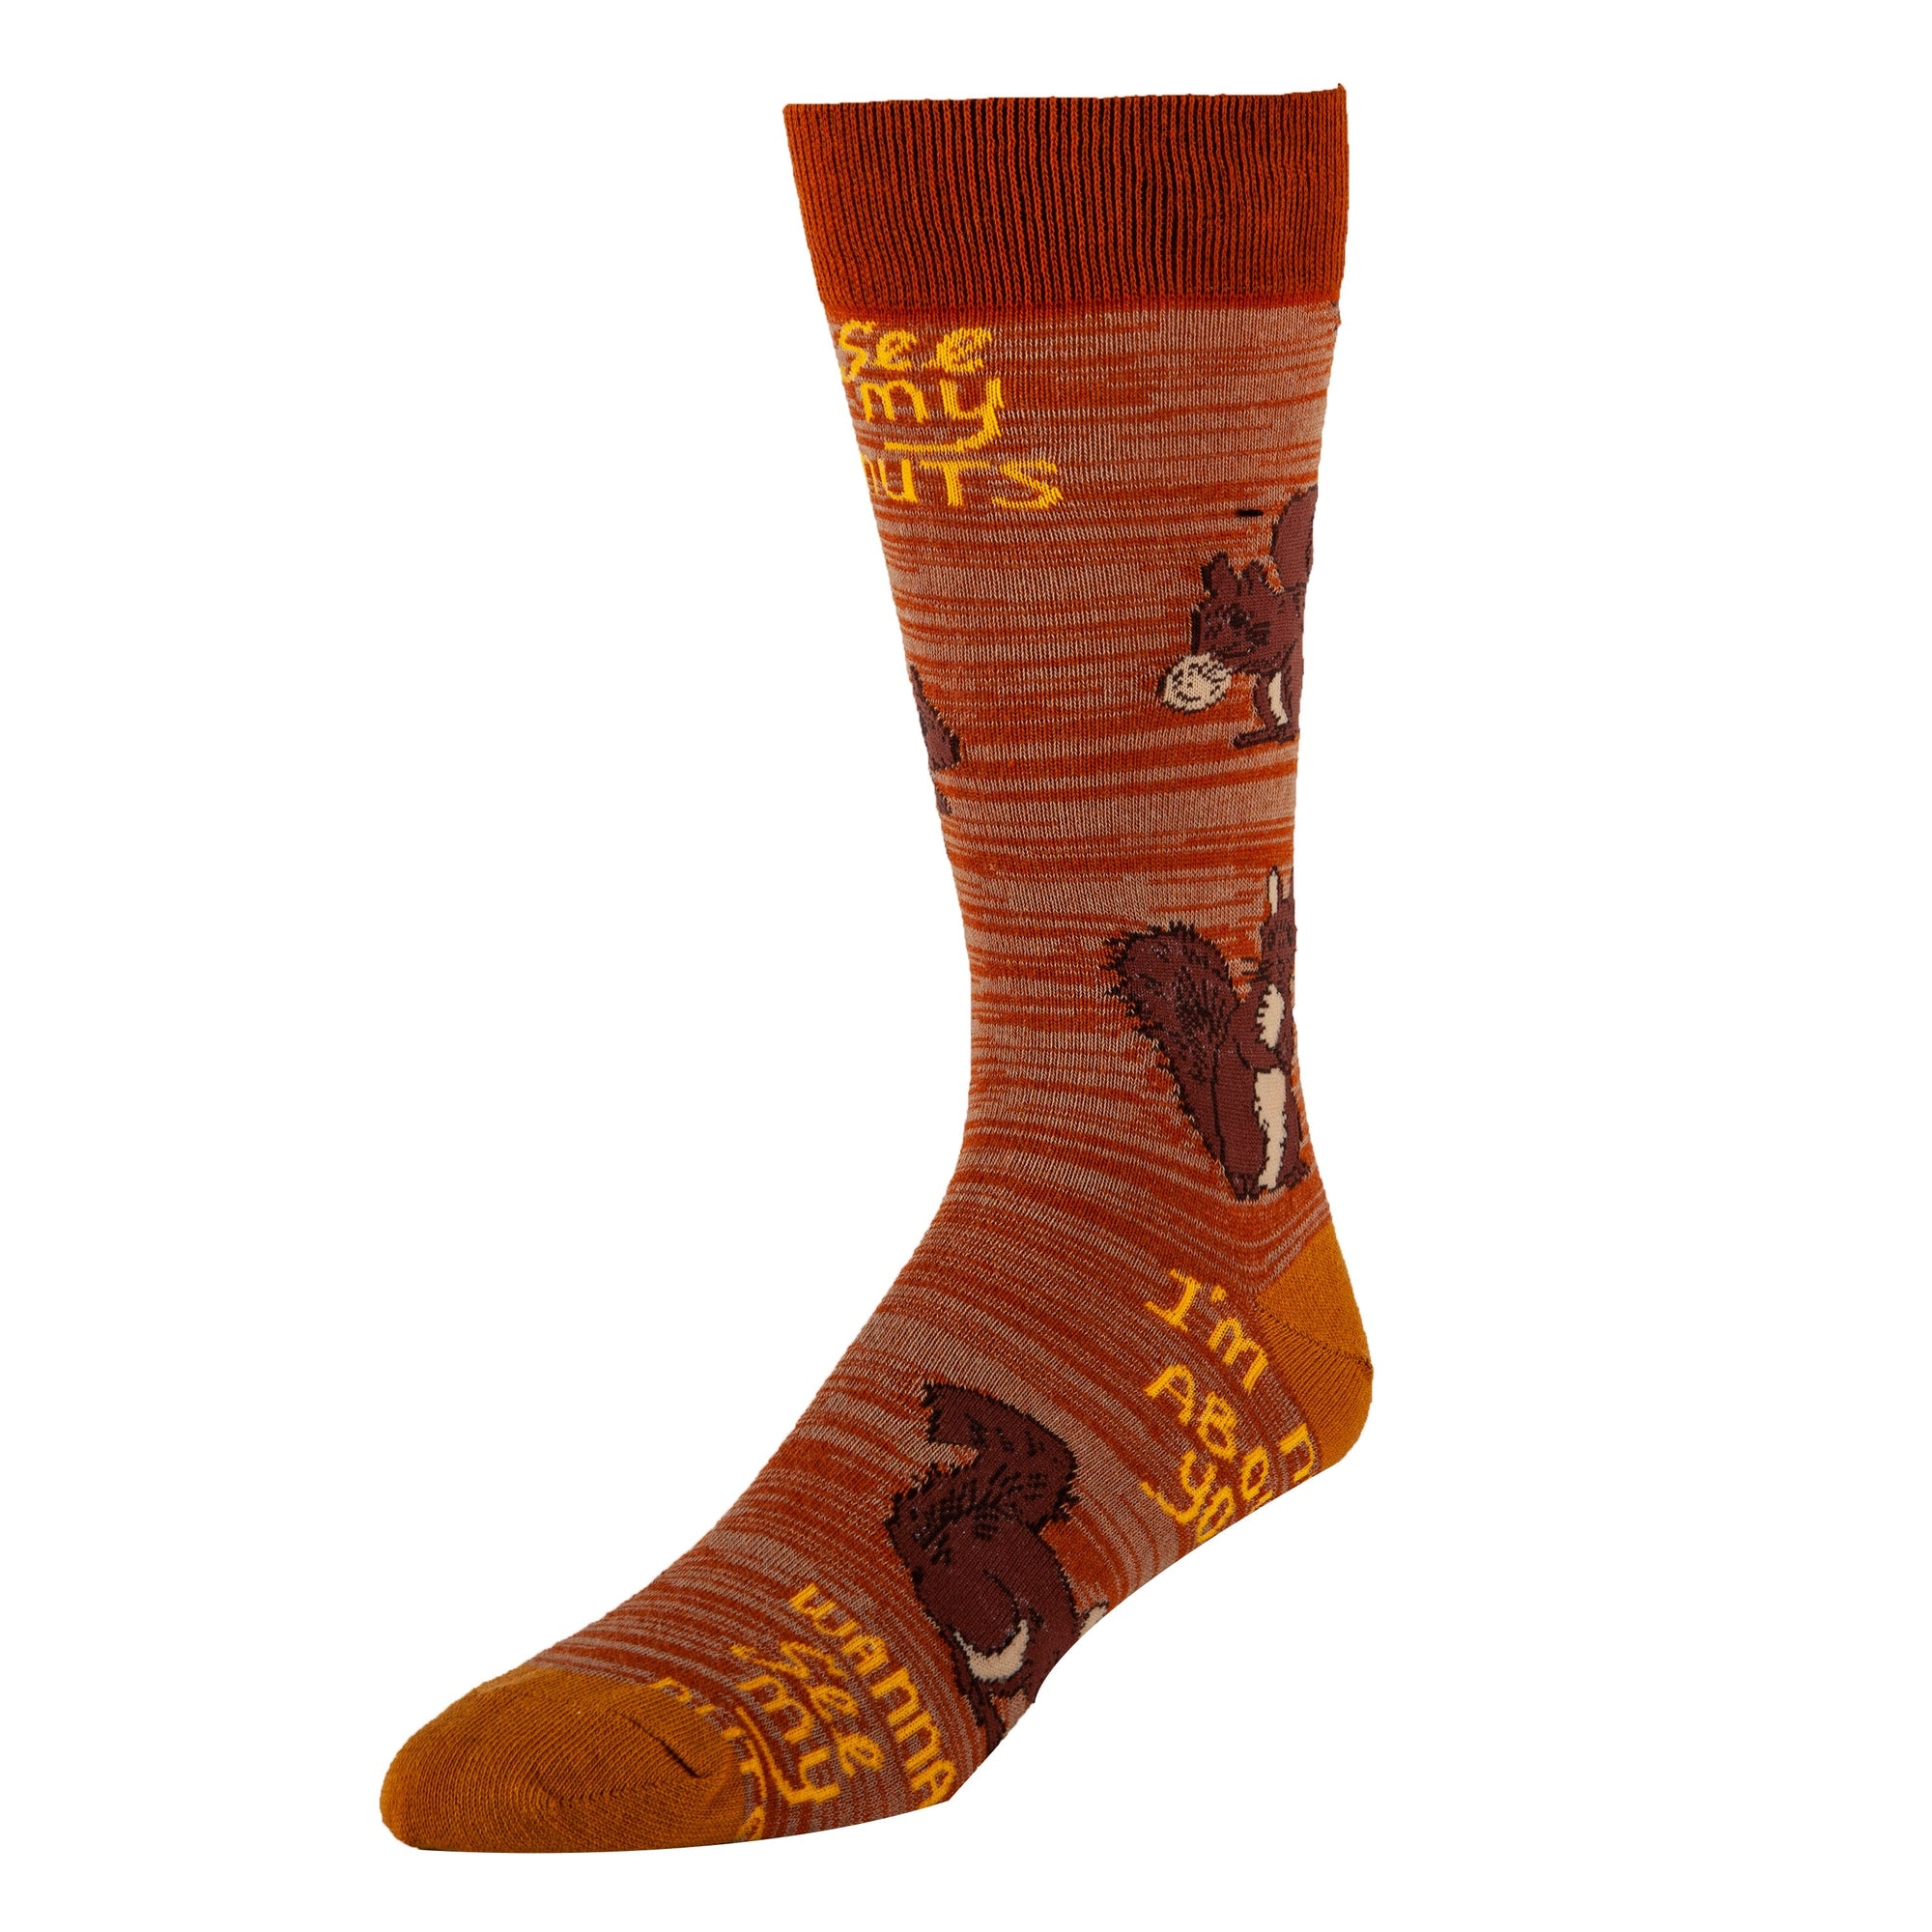 Mens Crew Socks-Nuts About U